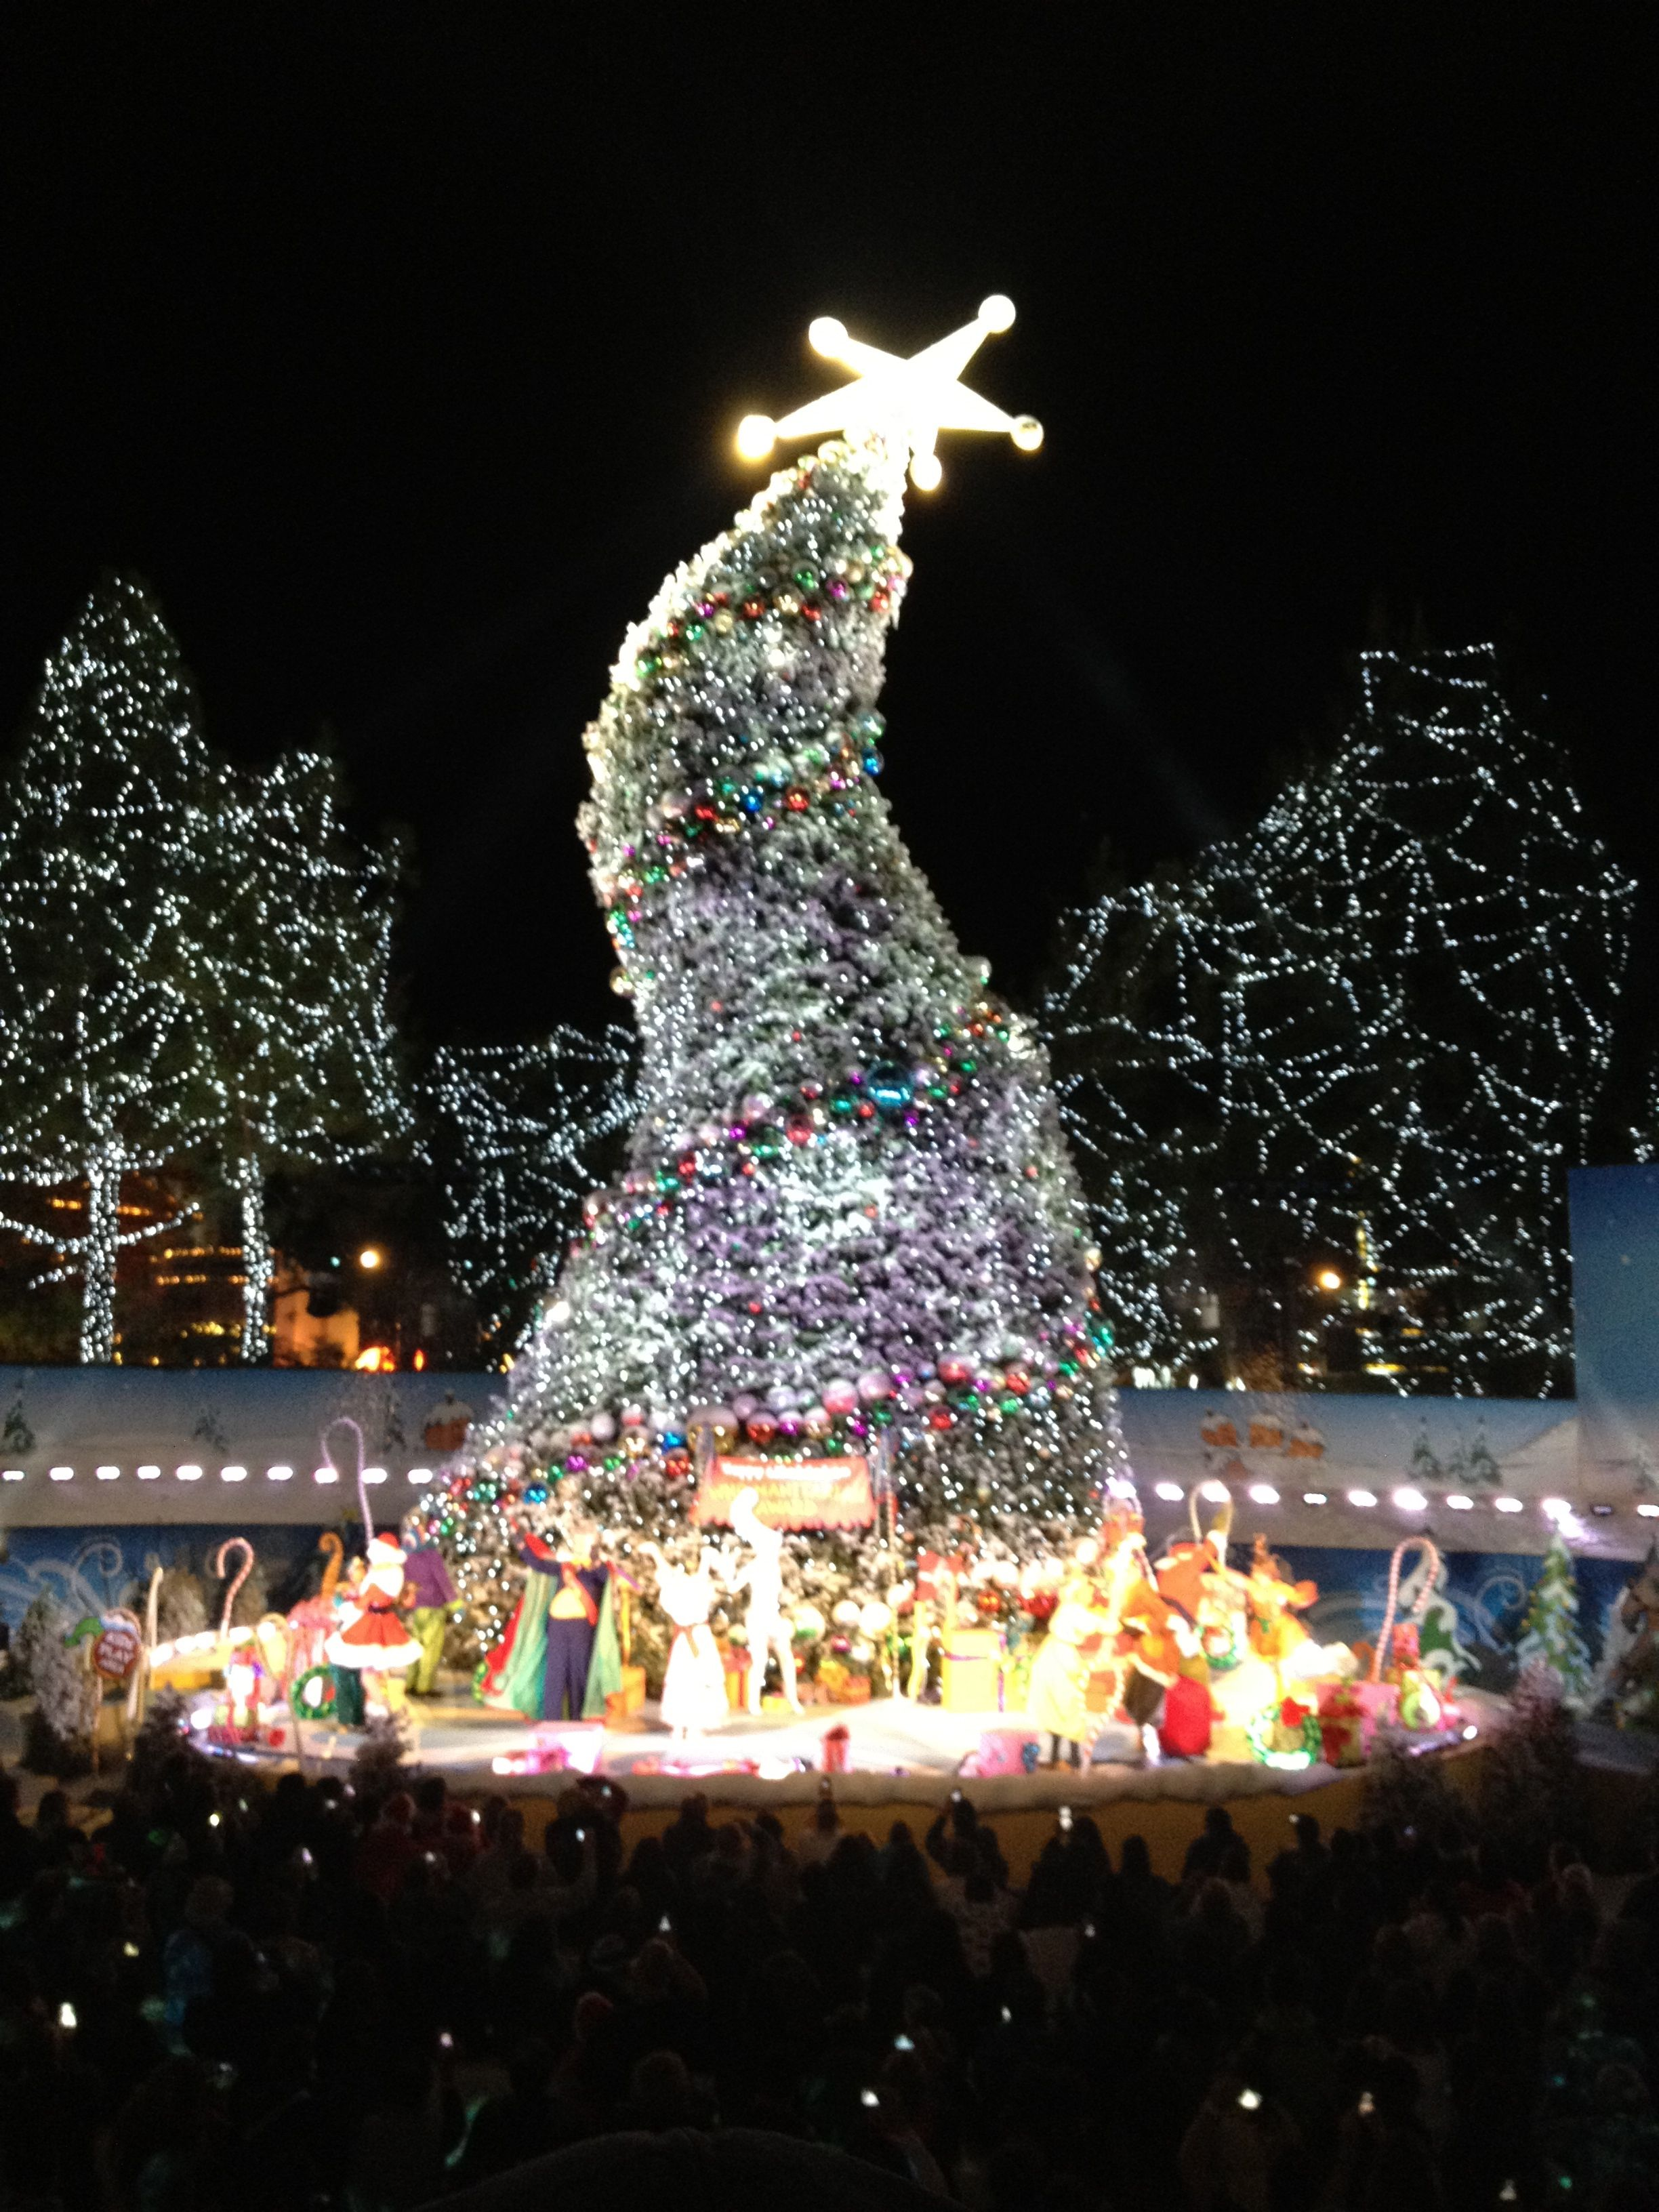 The Grinch Christmas Tree Movie.What S Your Favorite Christmas Movie Grinch Outdoor